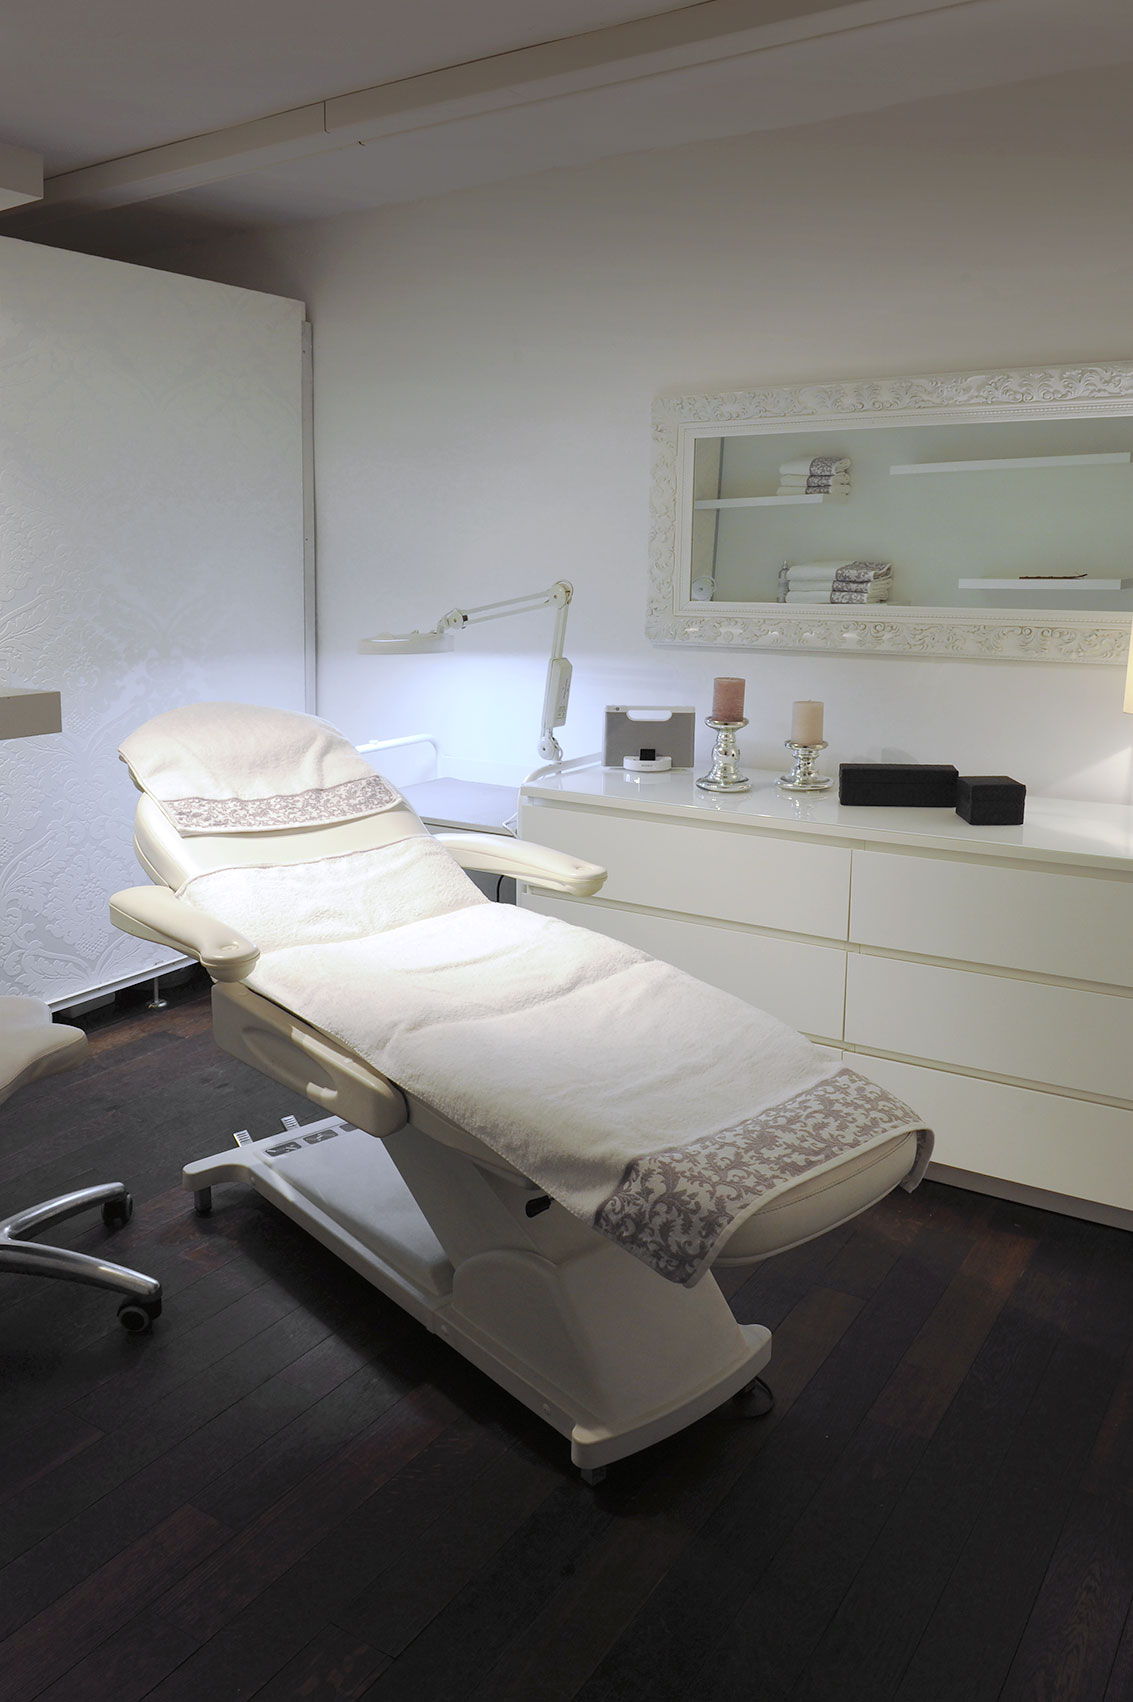 Beautylounge Vienna - Salon